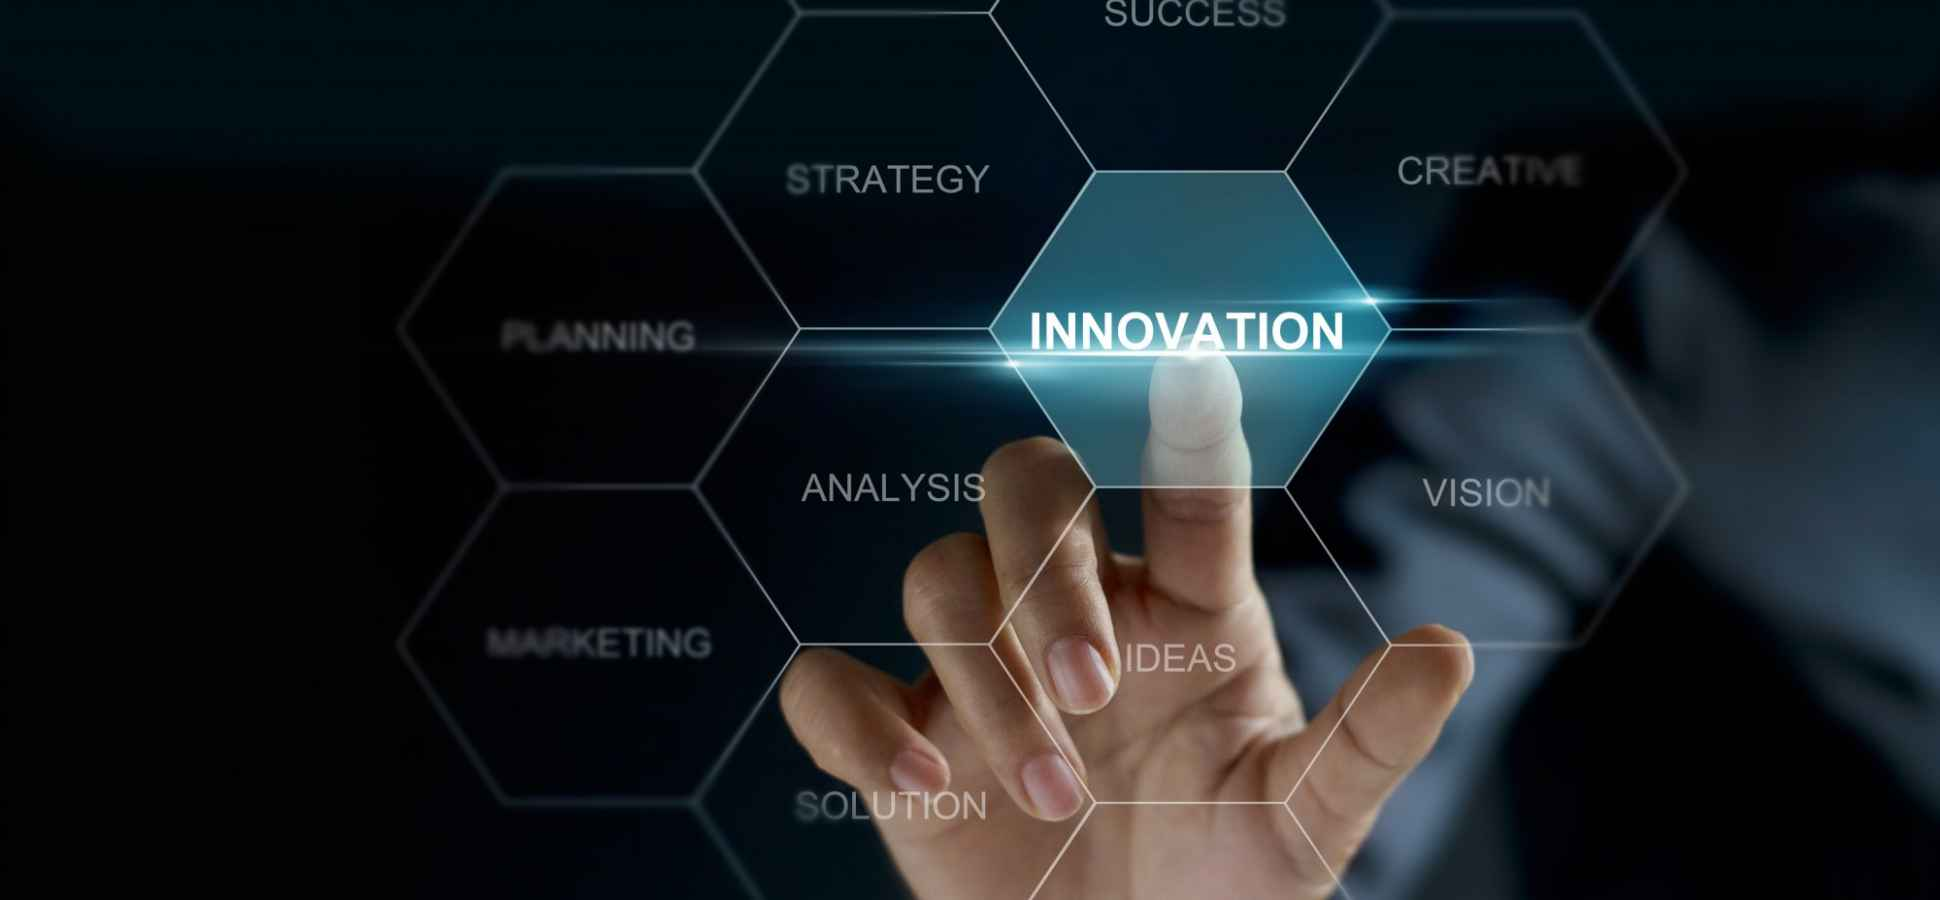 5 Innovation Keys for the Future of Work